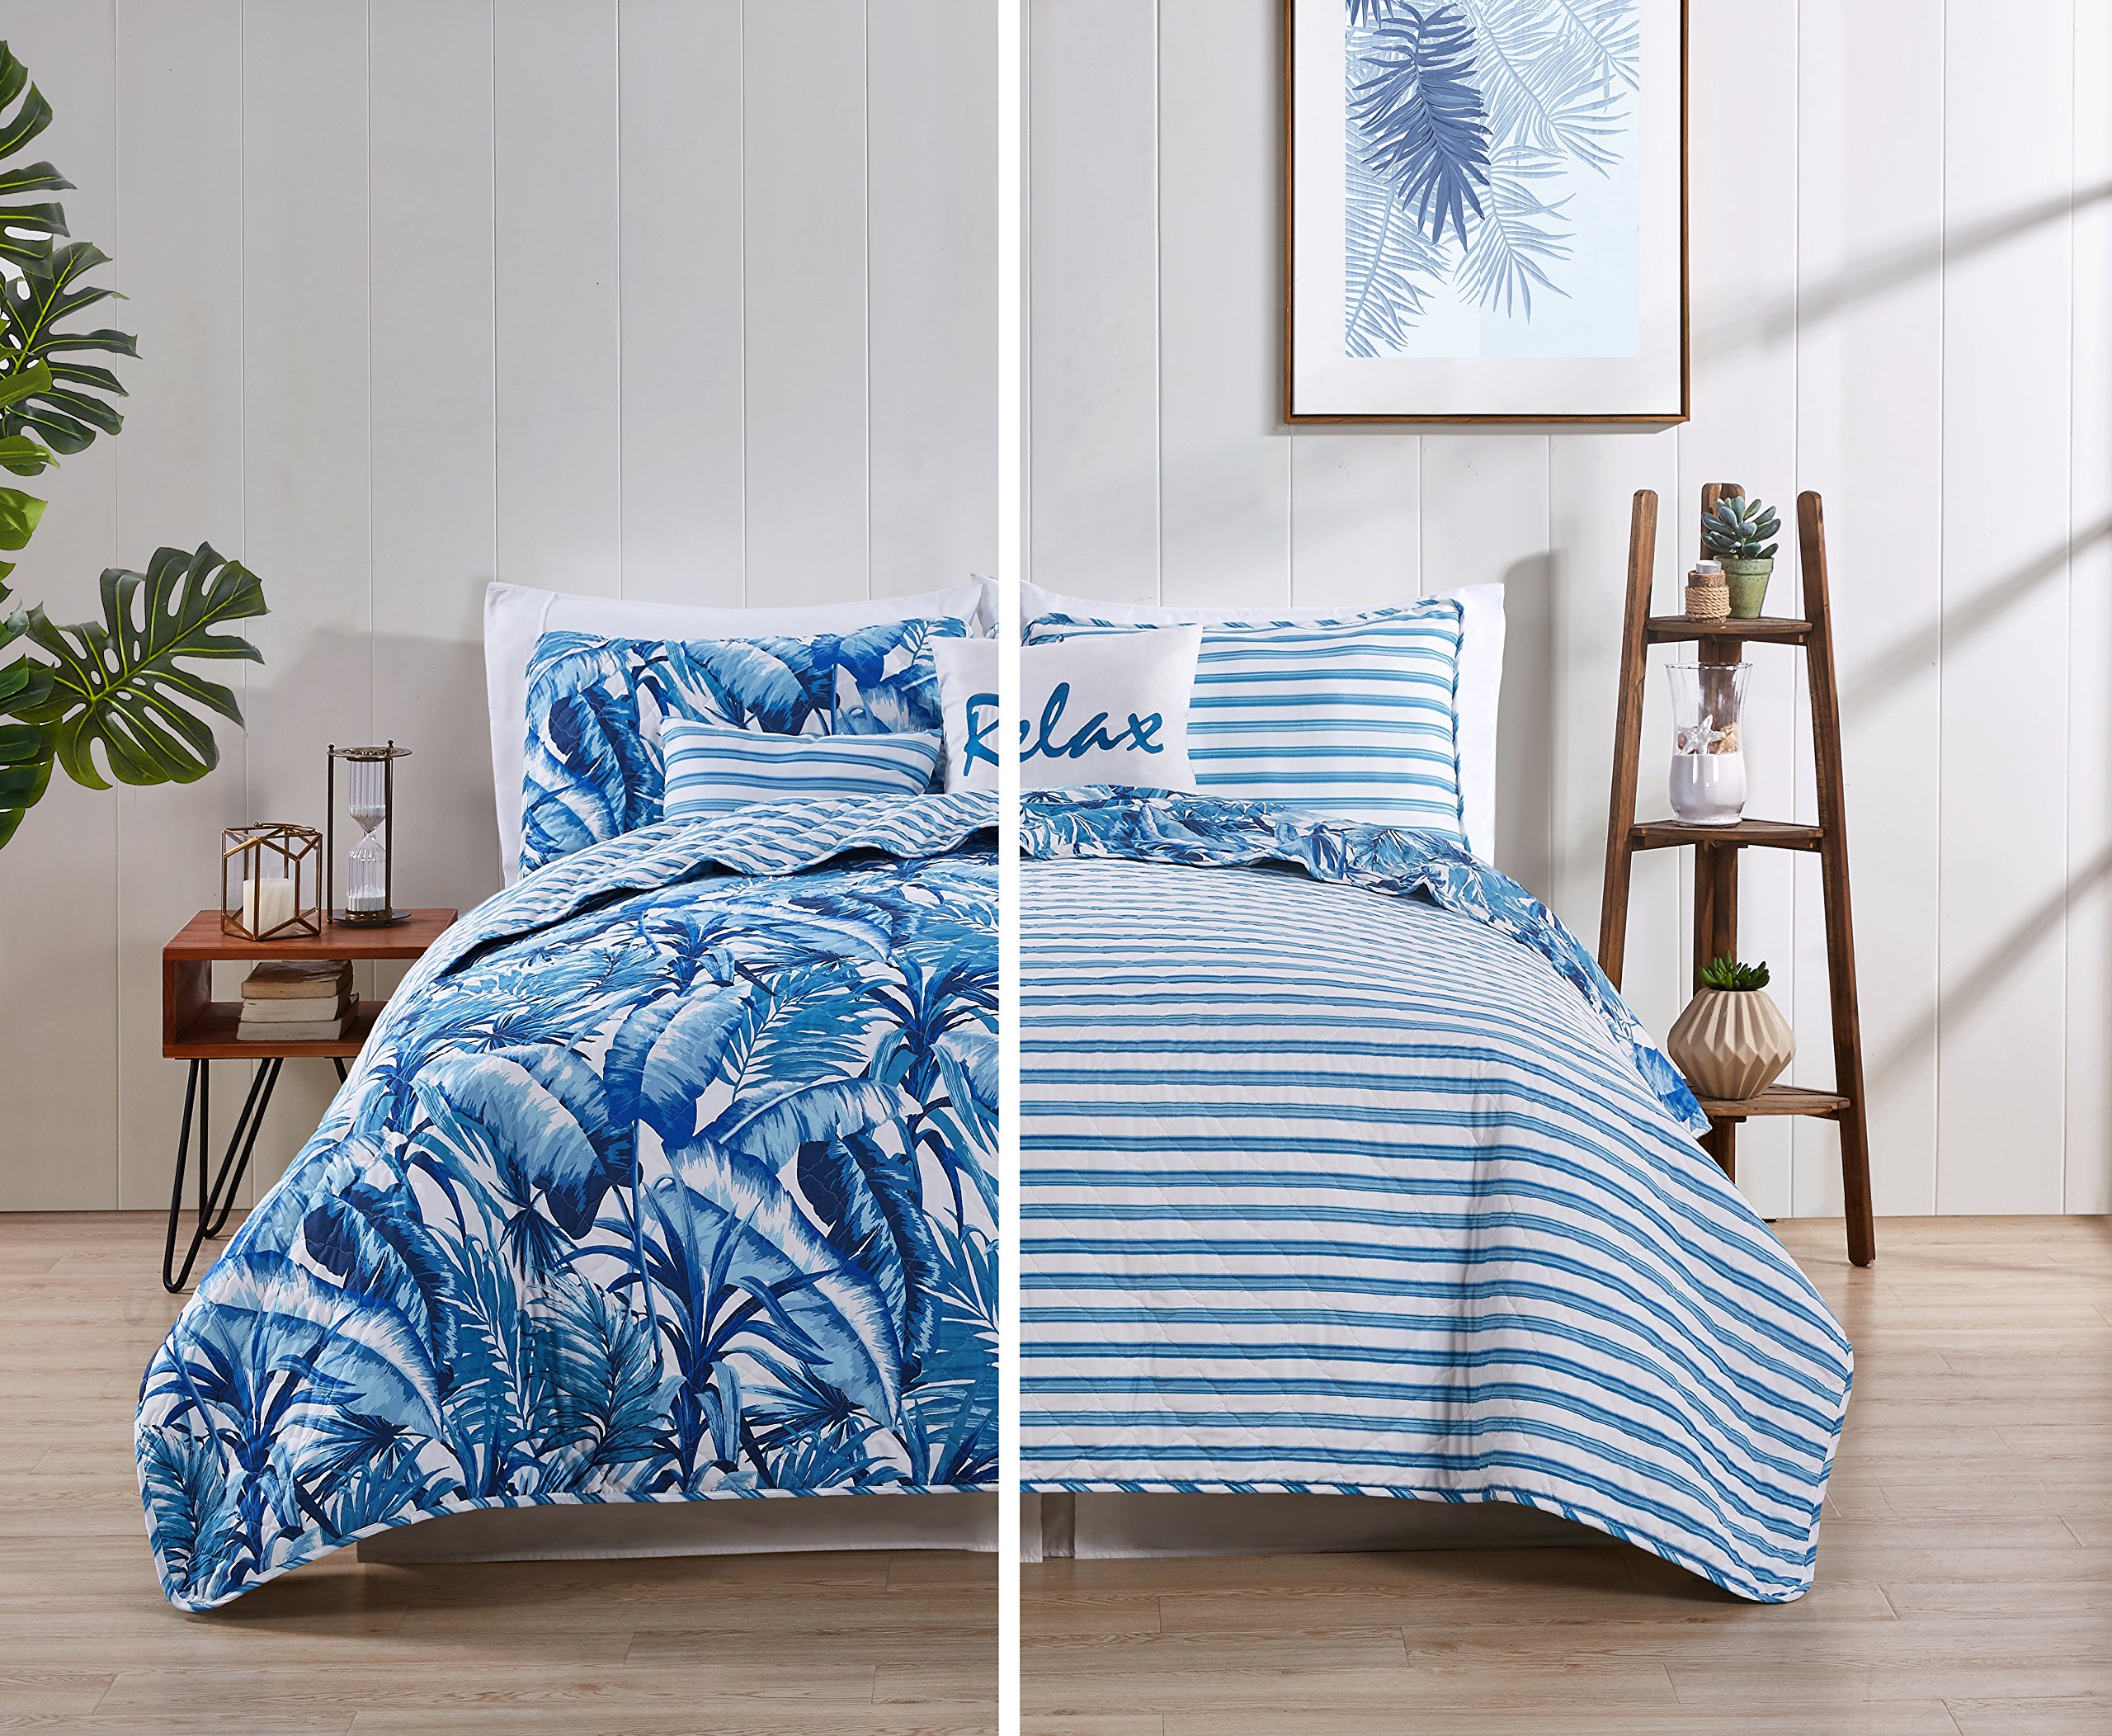 VCNY Home Tropical Bedding Quilt Set, Full/Queen, Blue